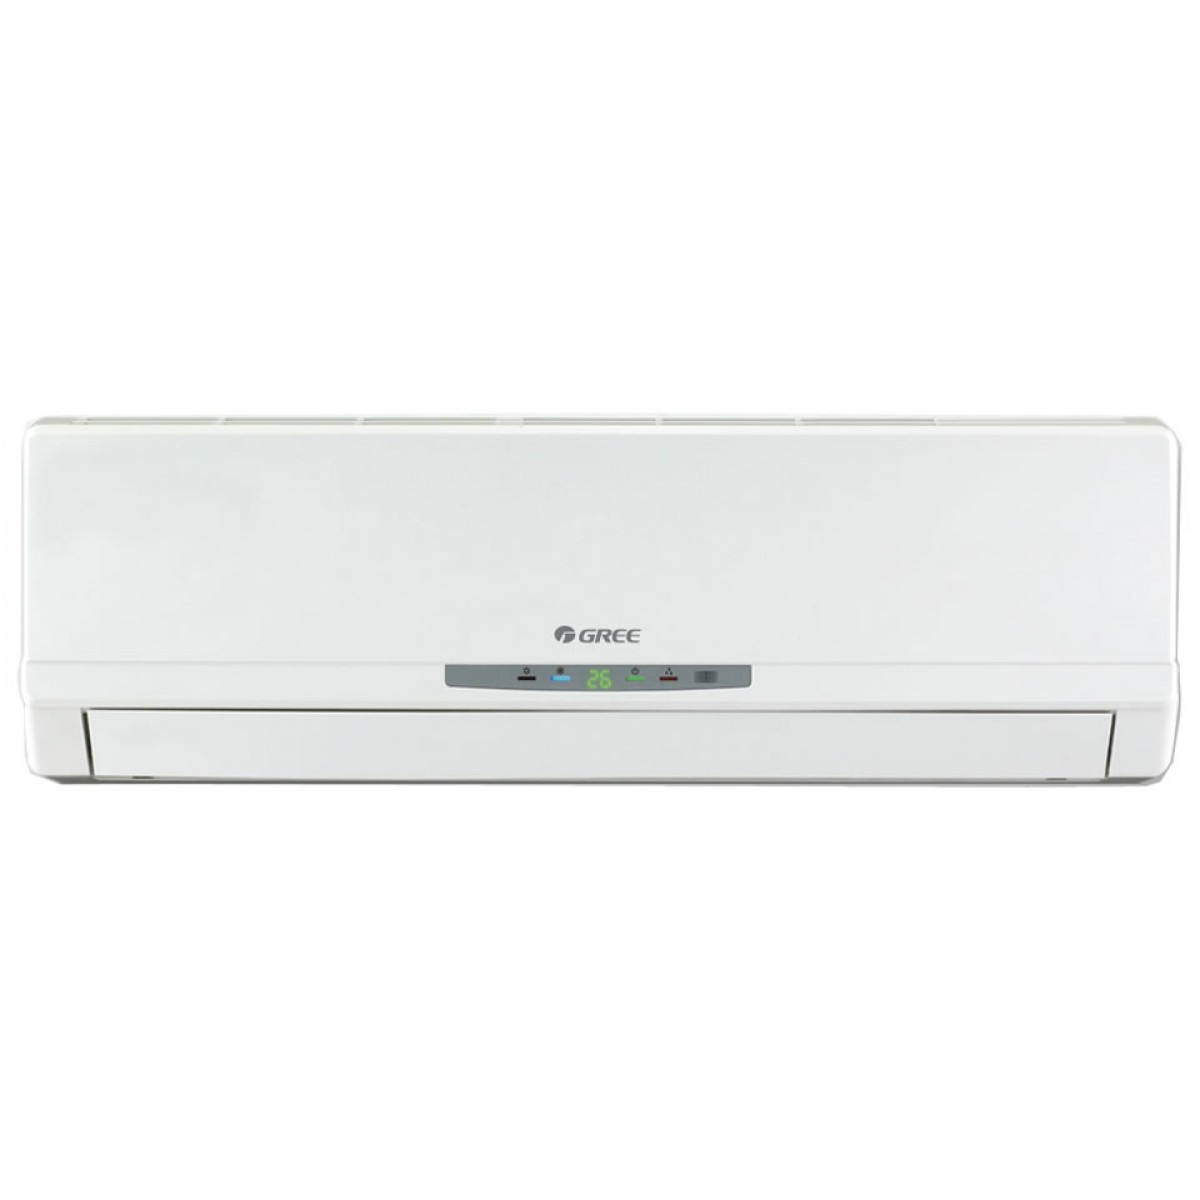 Gree 1 ton Split Air Conditioner GS 12CZ8S Price in Bangladesh :AC  #3B7A90